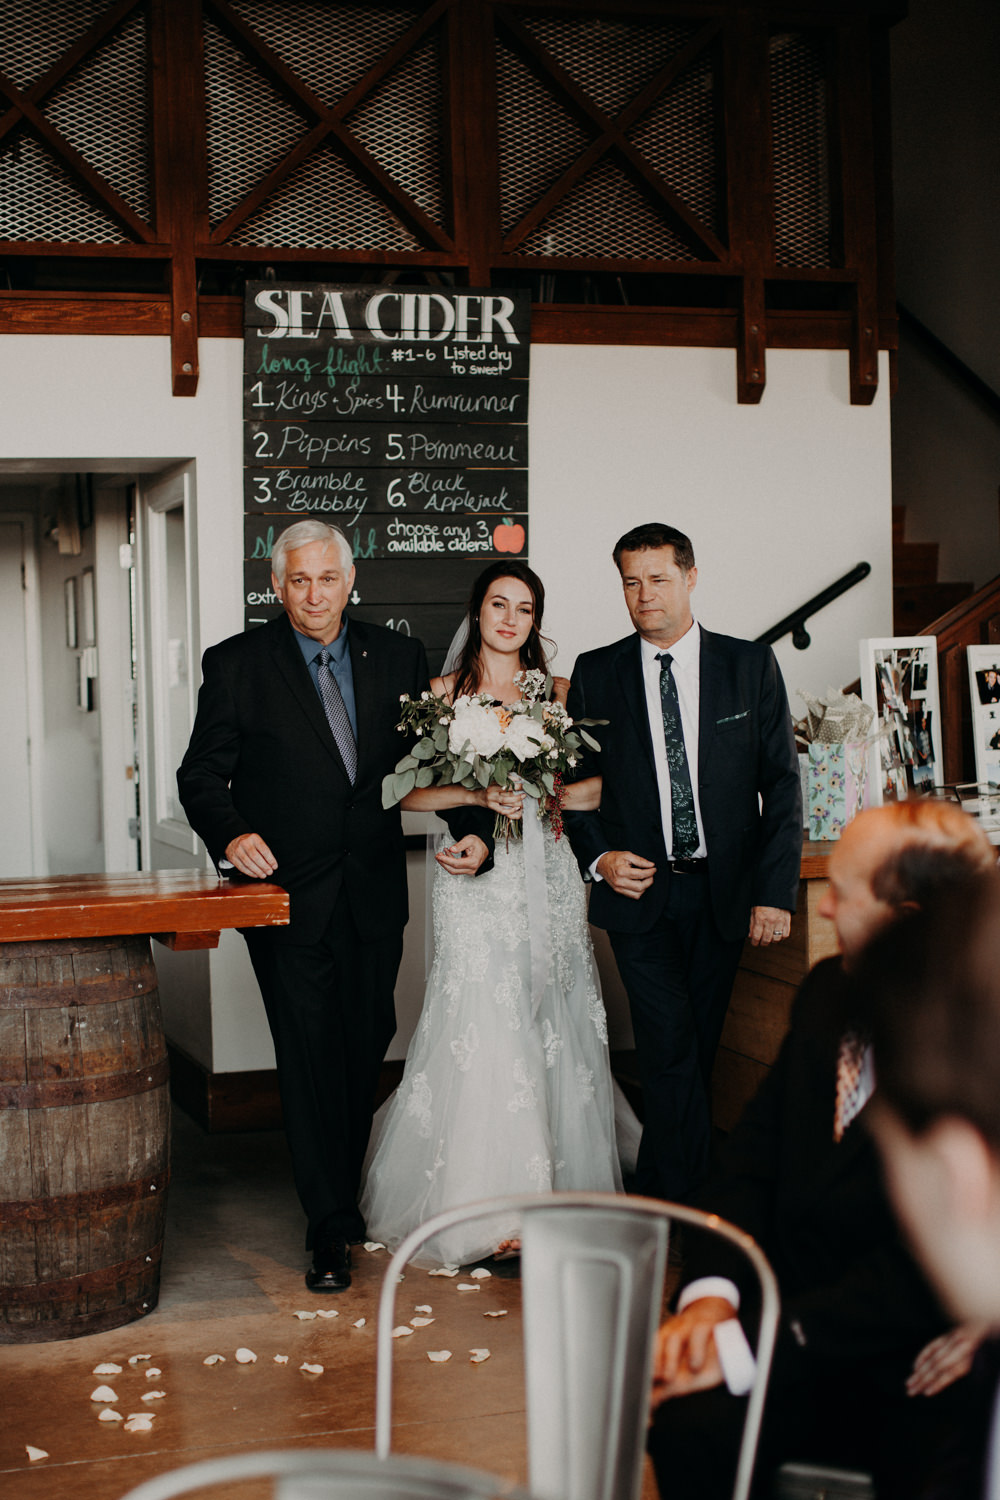 Sea-Cider-Farm-Wedding-103.jpg